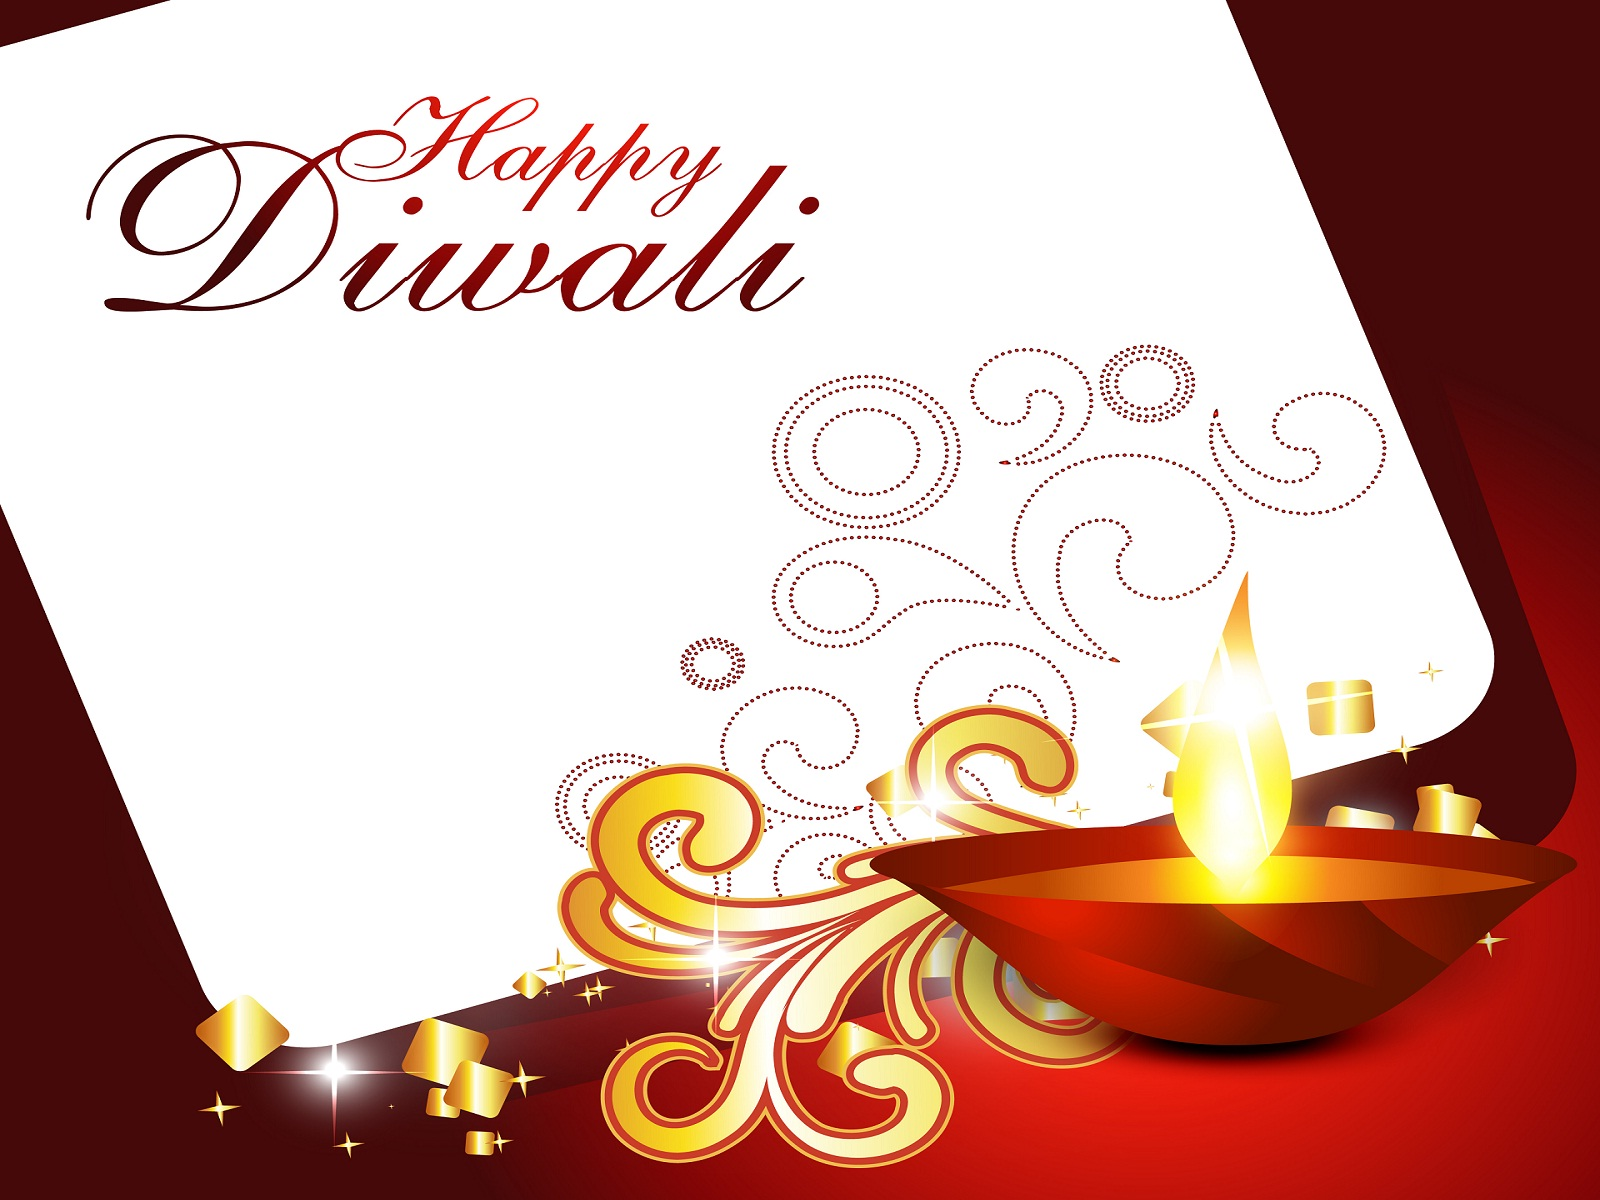 Diwali Greeting Cards Wallpapers